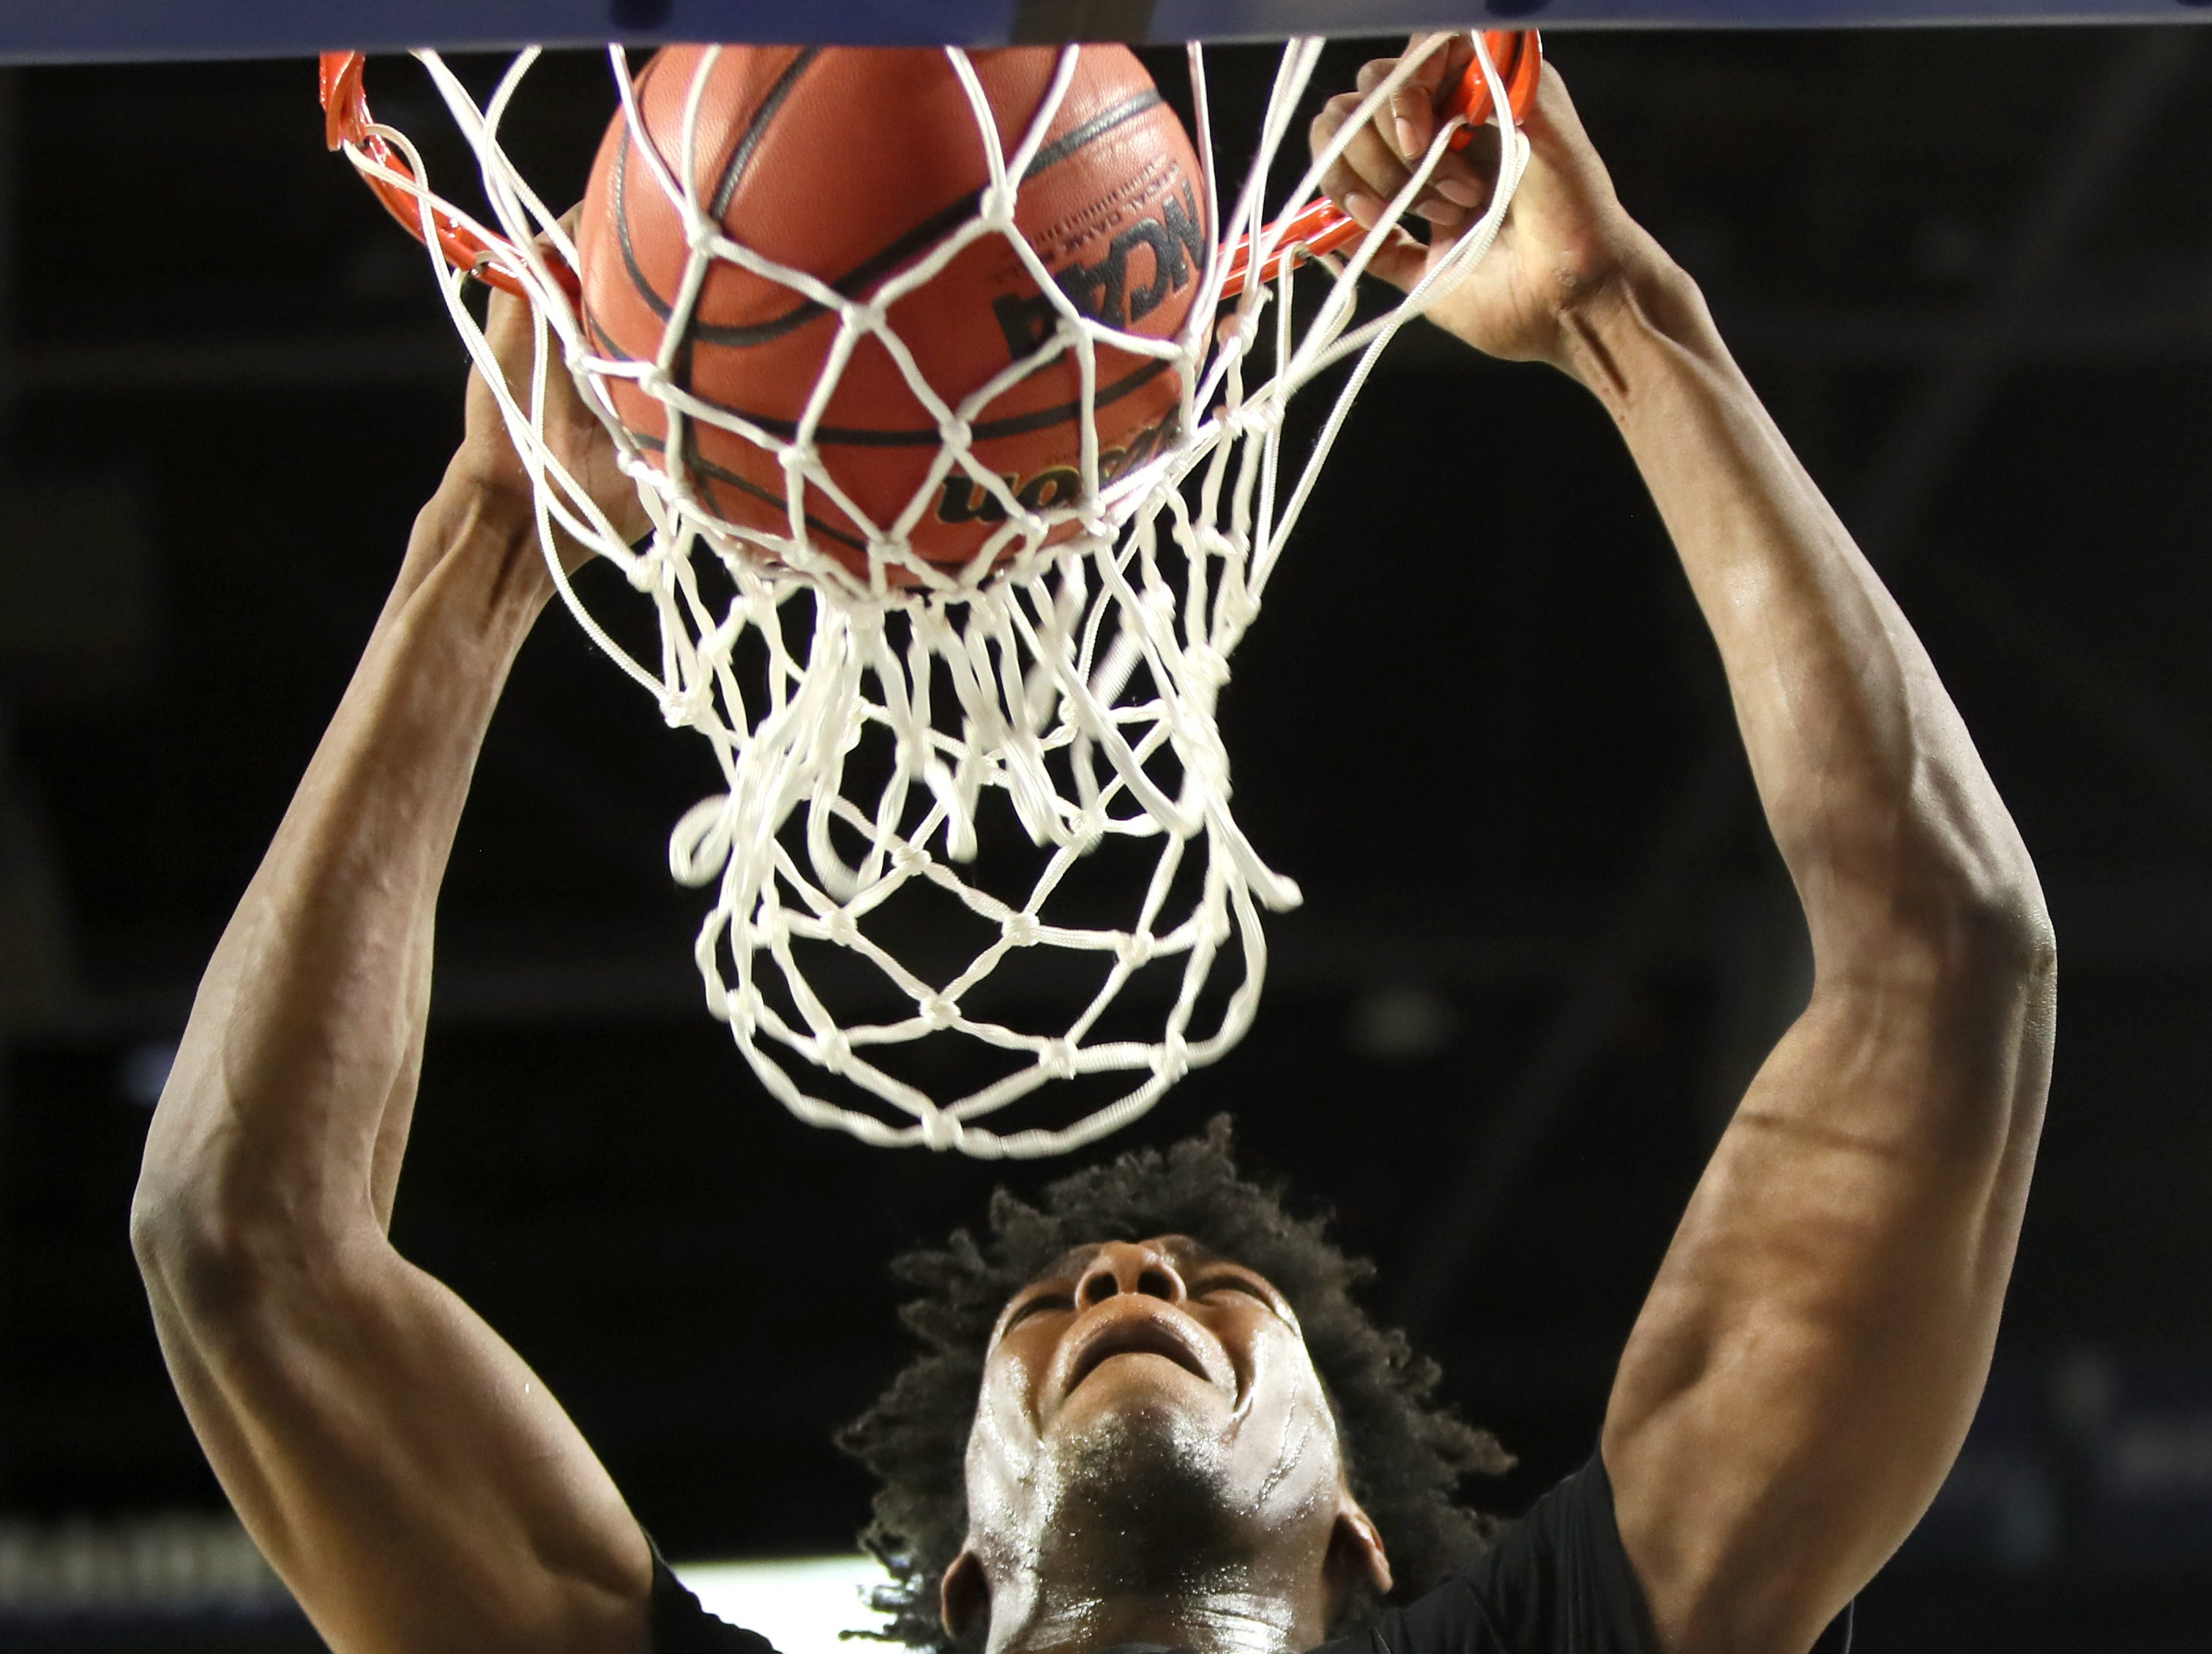 Memphis East's James Wiseman dunks the ball against Brentwood during the Class AAA boys basketball state semifinal at the Murphy Center in Murfreesboro, Tenn. on Thursday, March 14, 2019.